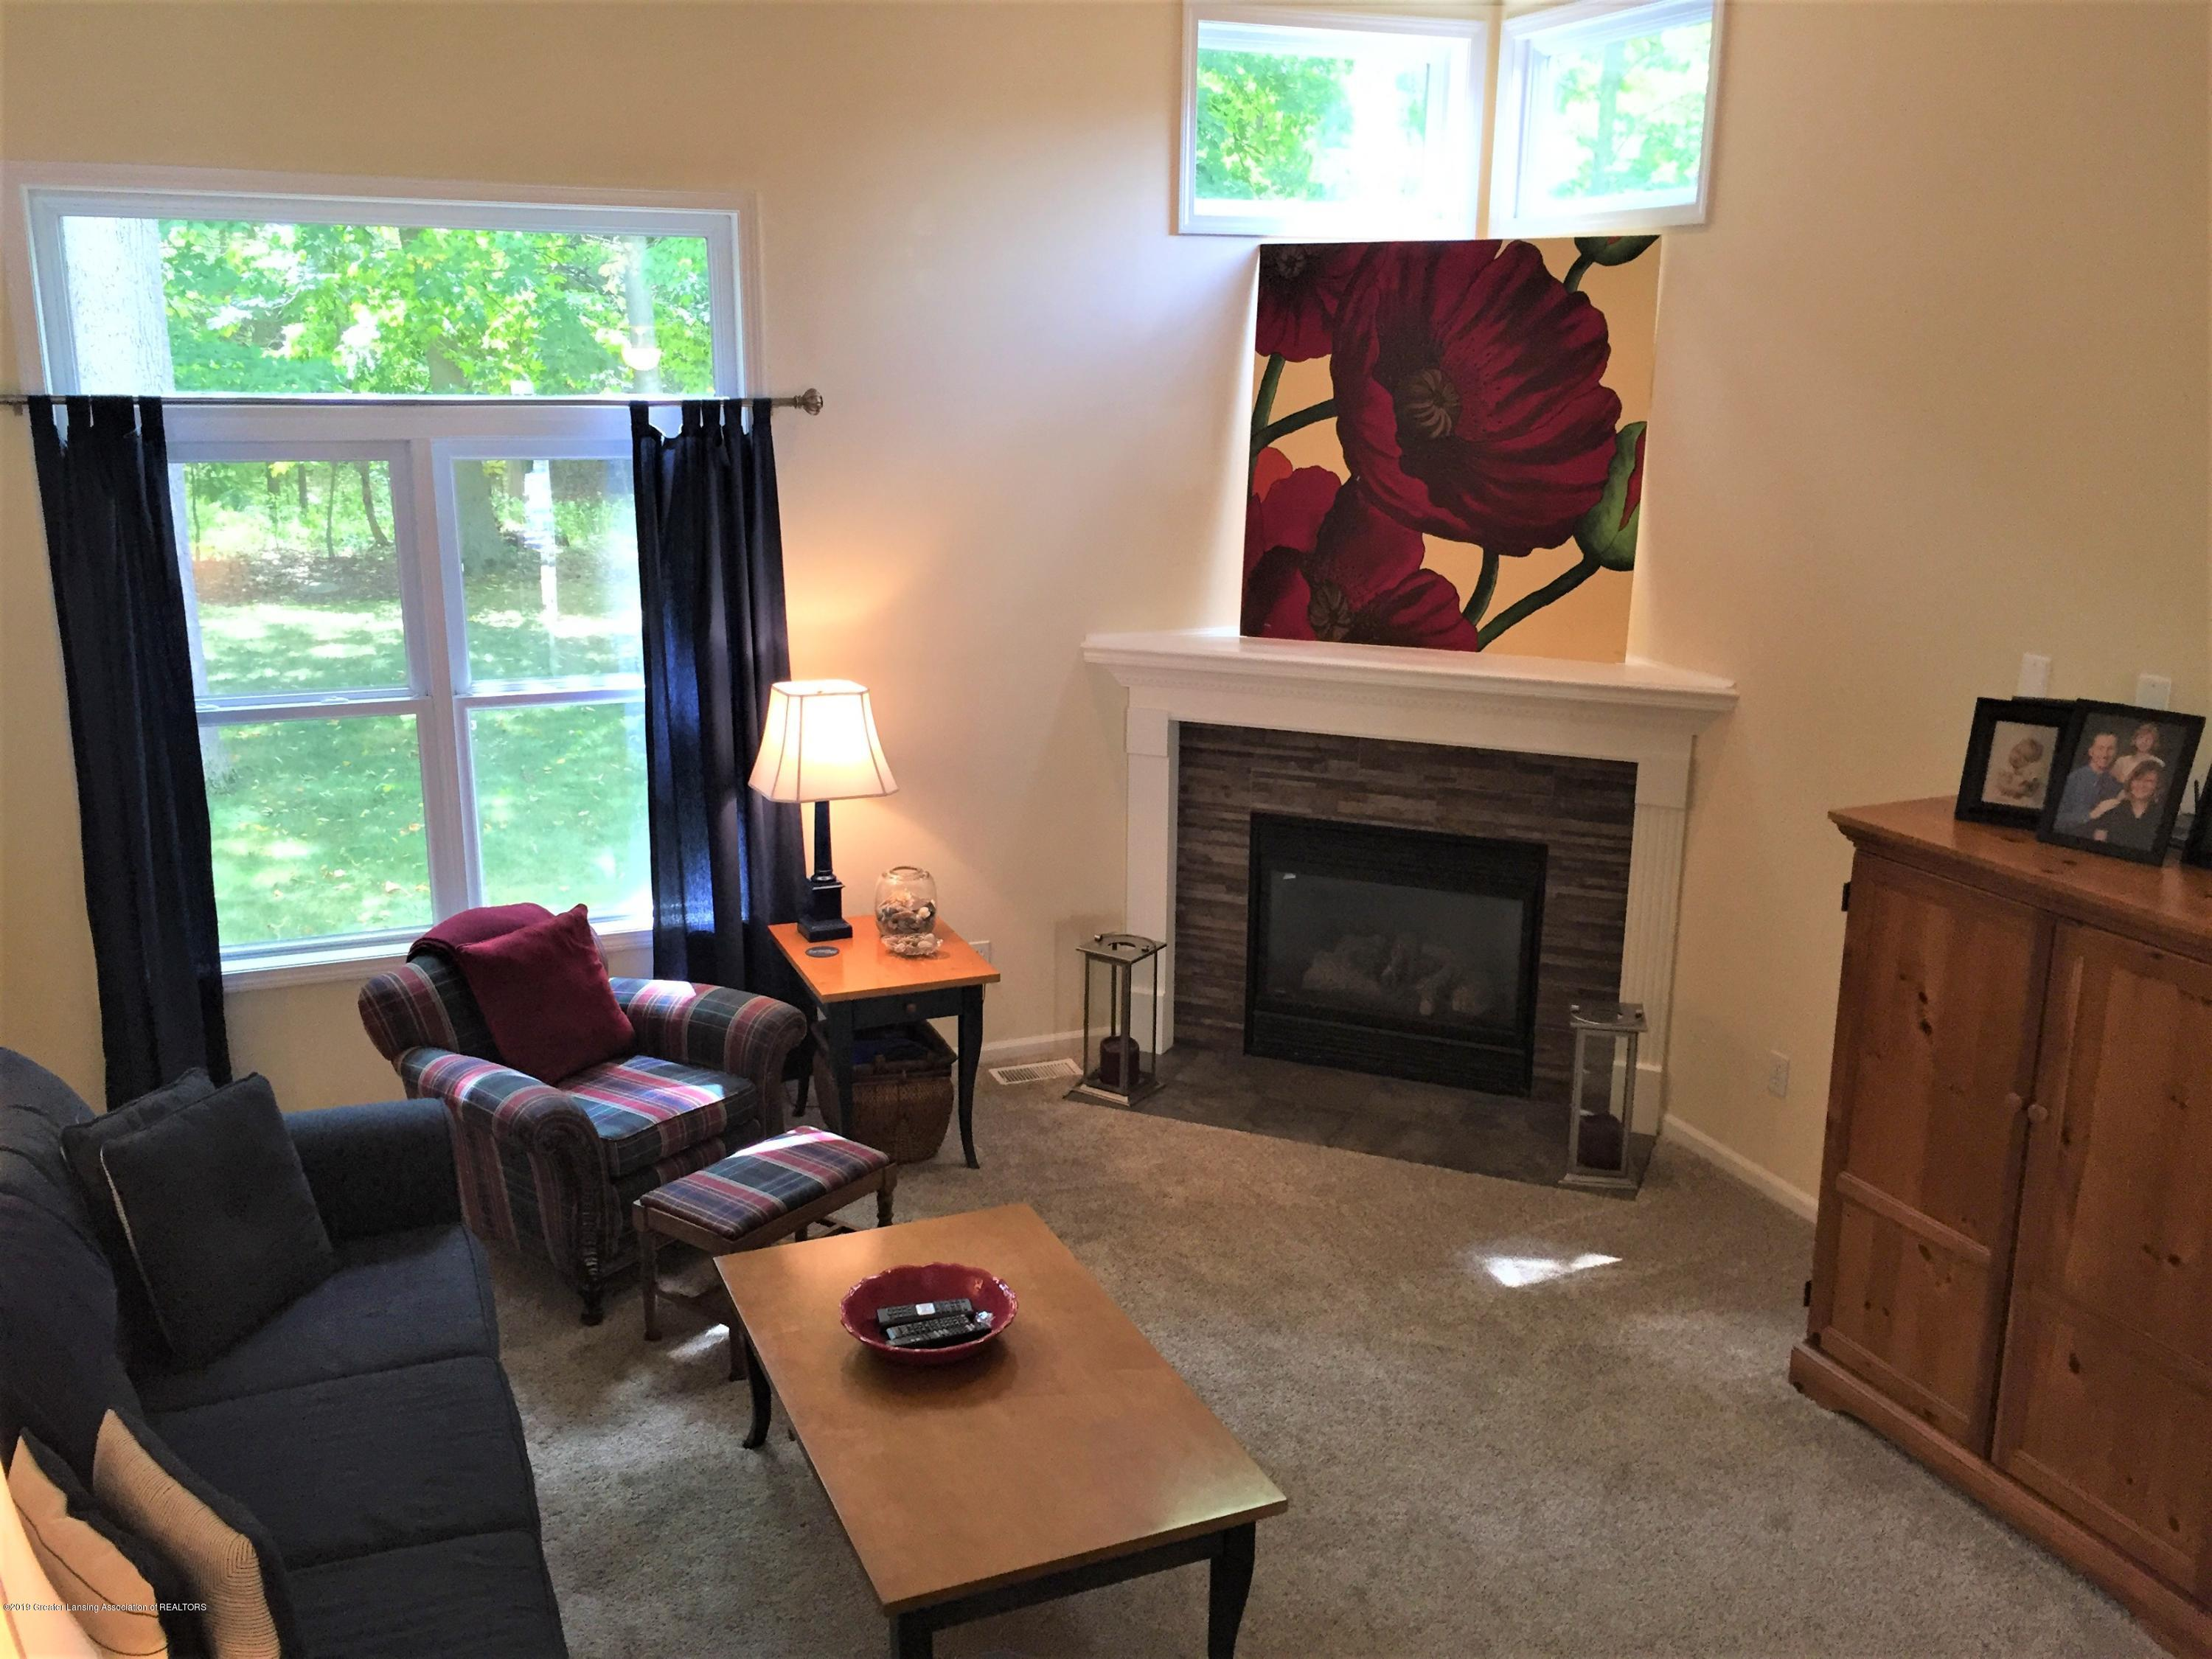 8617 Wheatdale Dr - Living Room View from Stairs - 20